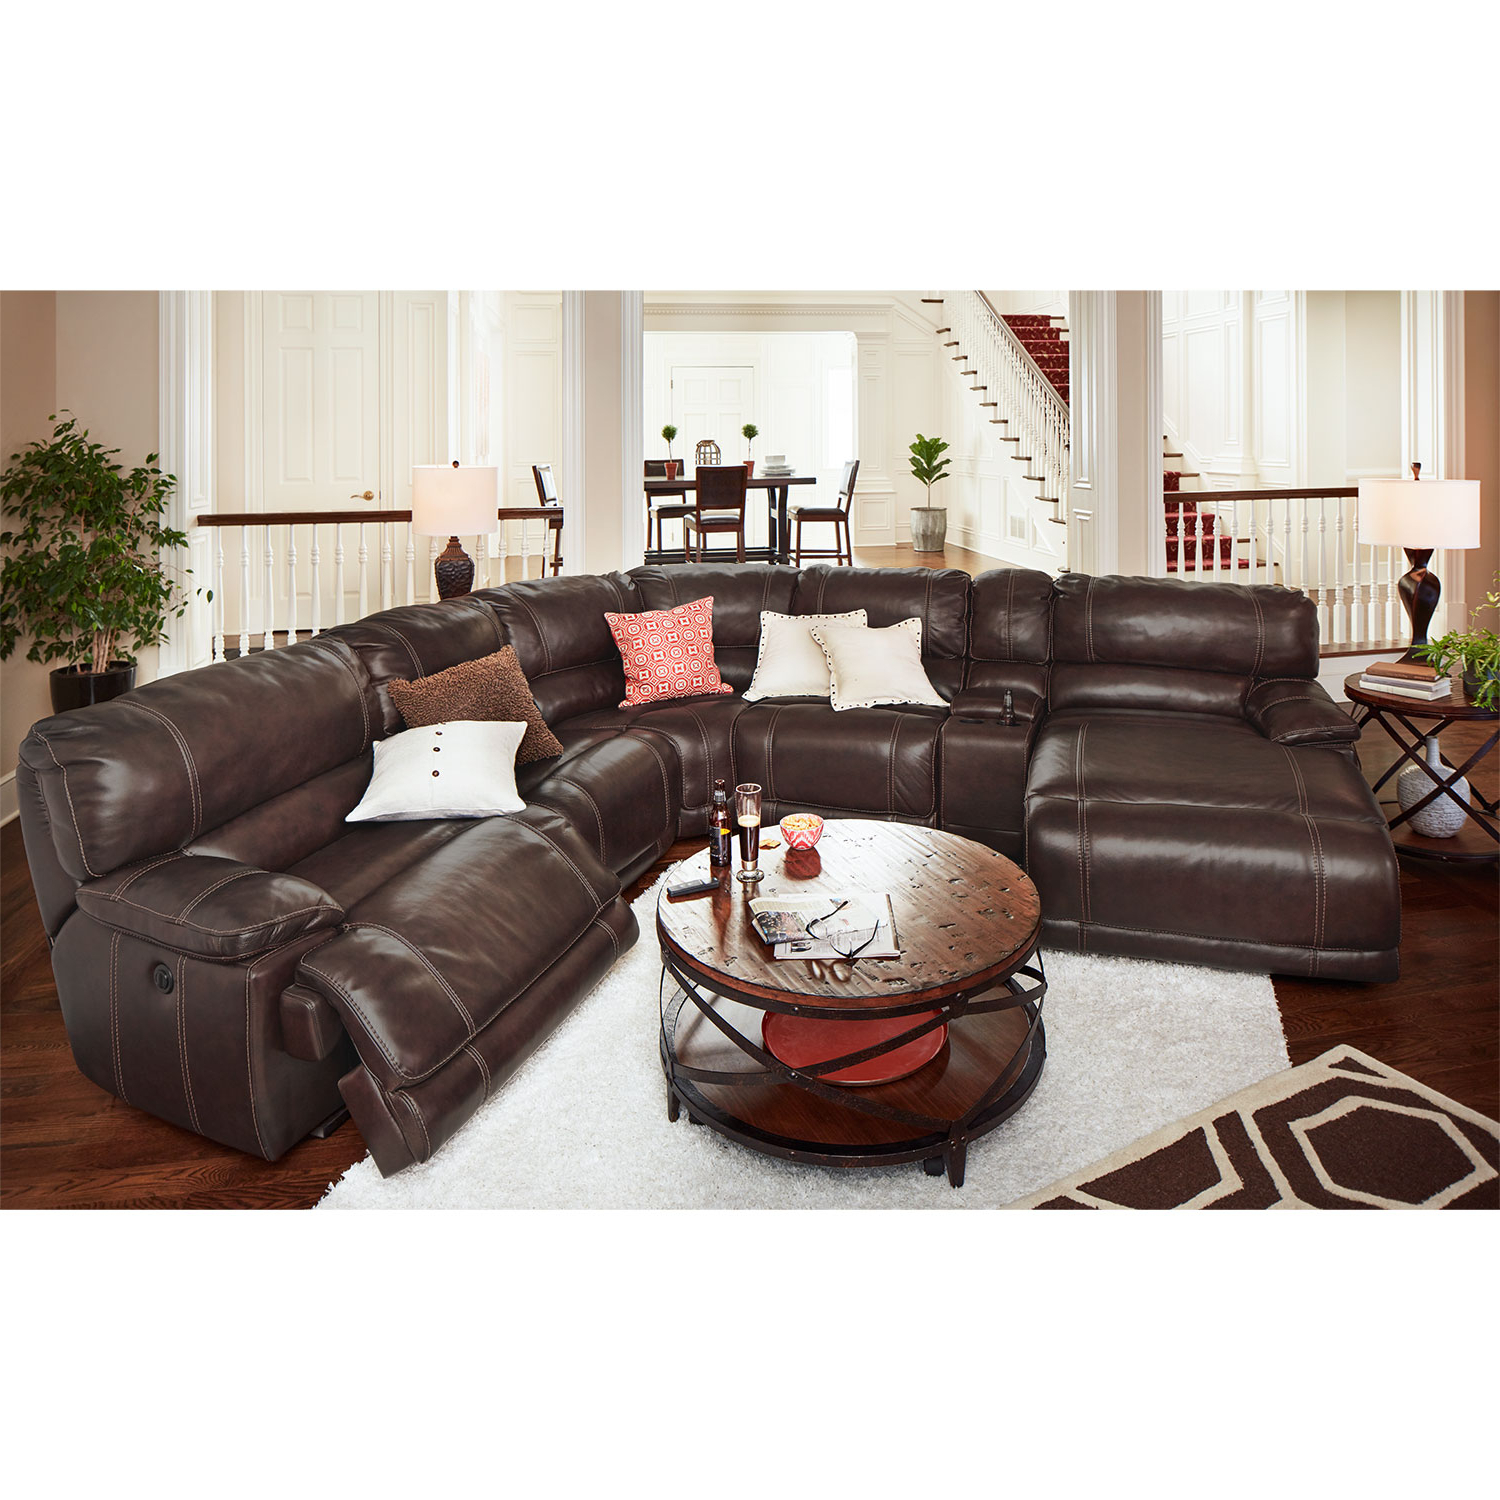 Trendy Denali Charcoal Grey 6 Piece Reclining Sectionals With 2 Power Headrests Throughout Power Sectional – Tidex (View 19 of 20)